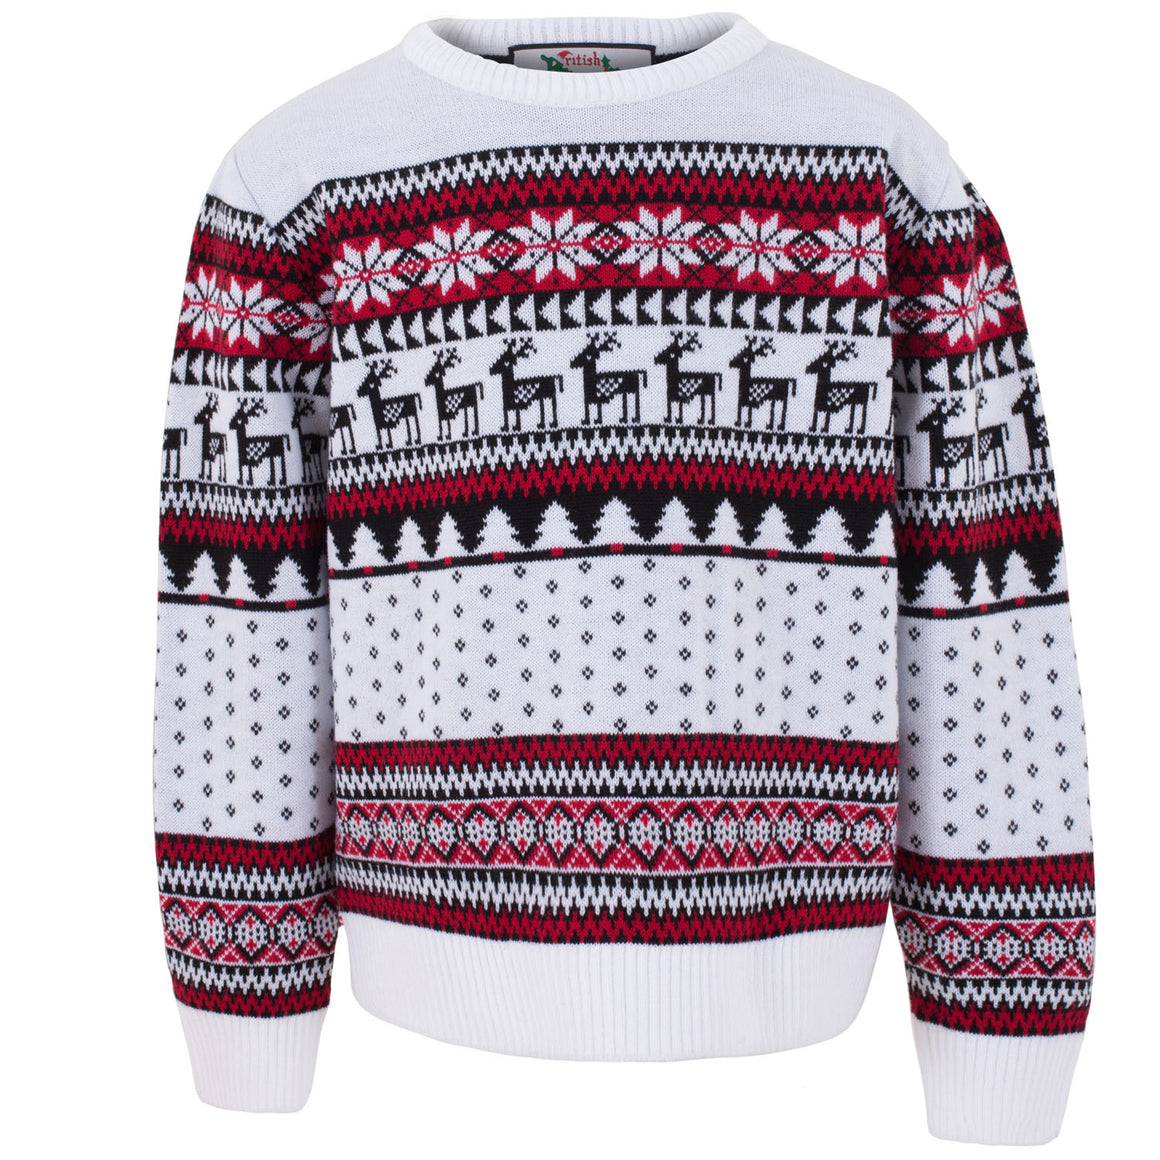 Classic Kids Fairisle Christmas Jumper